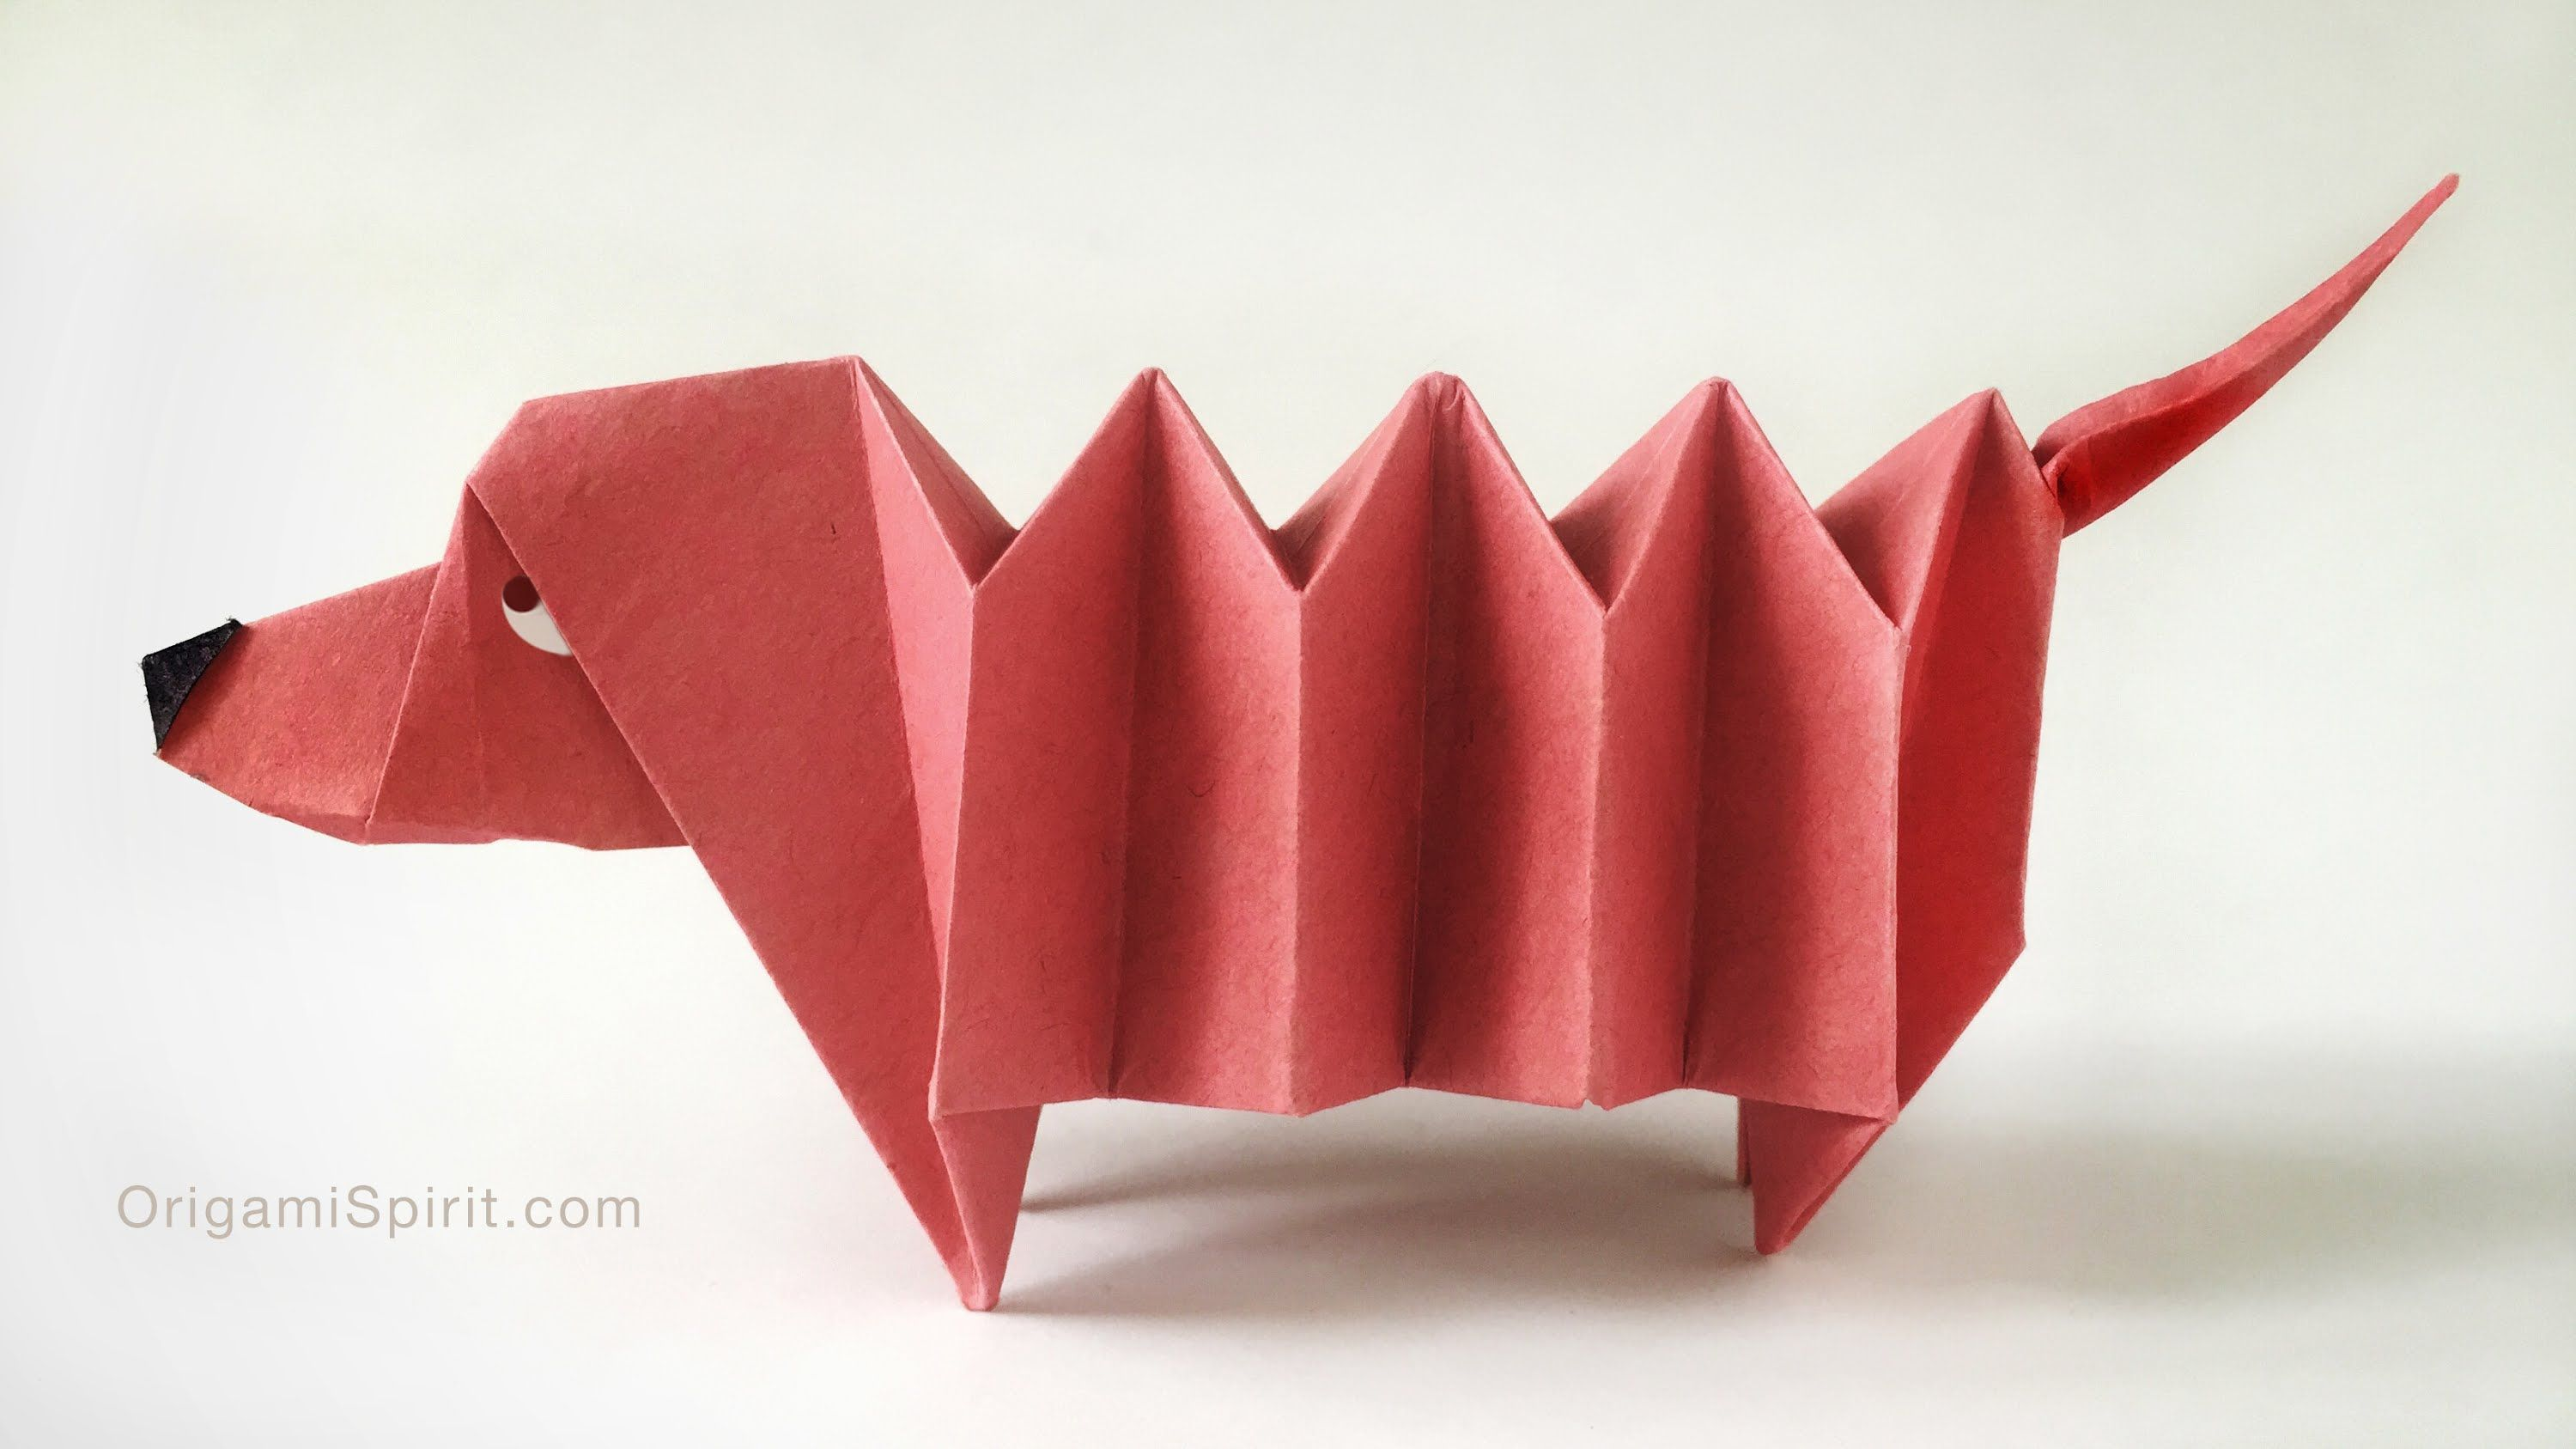 Origami Tutorial And Video Instruction On How To Make An Origami